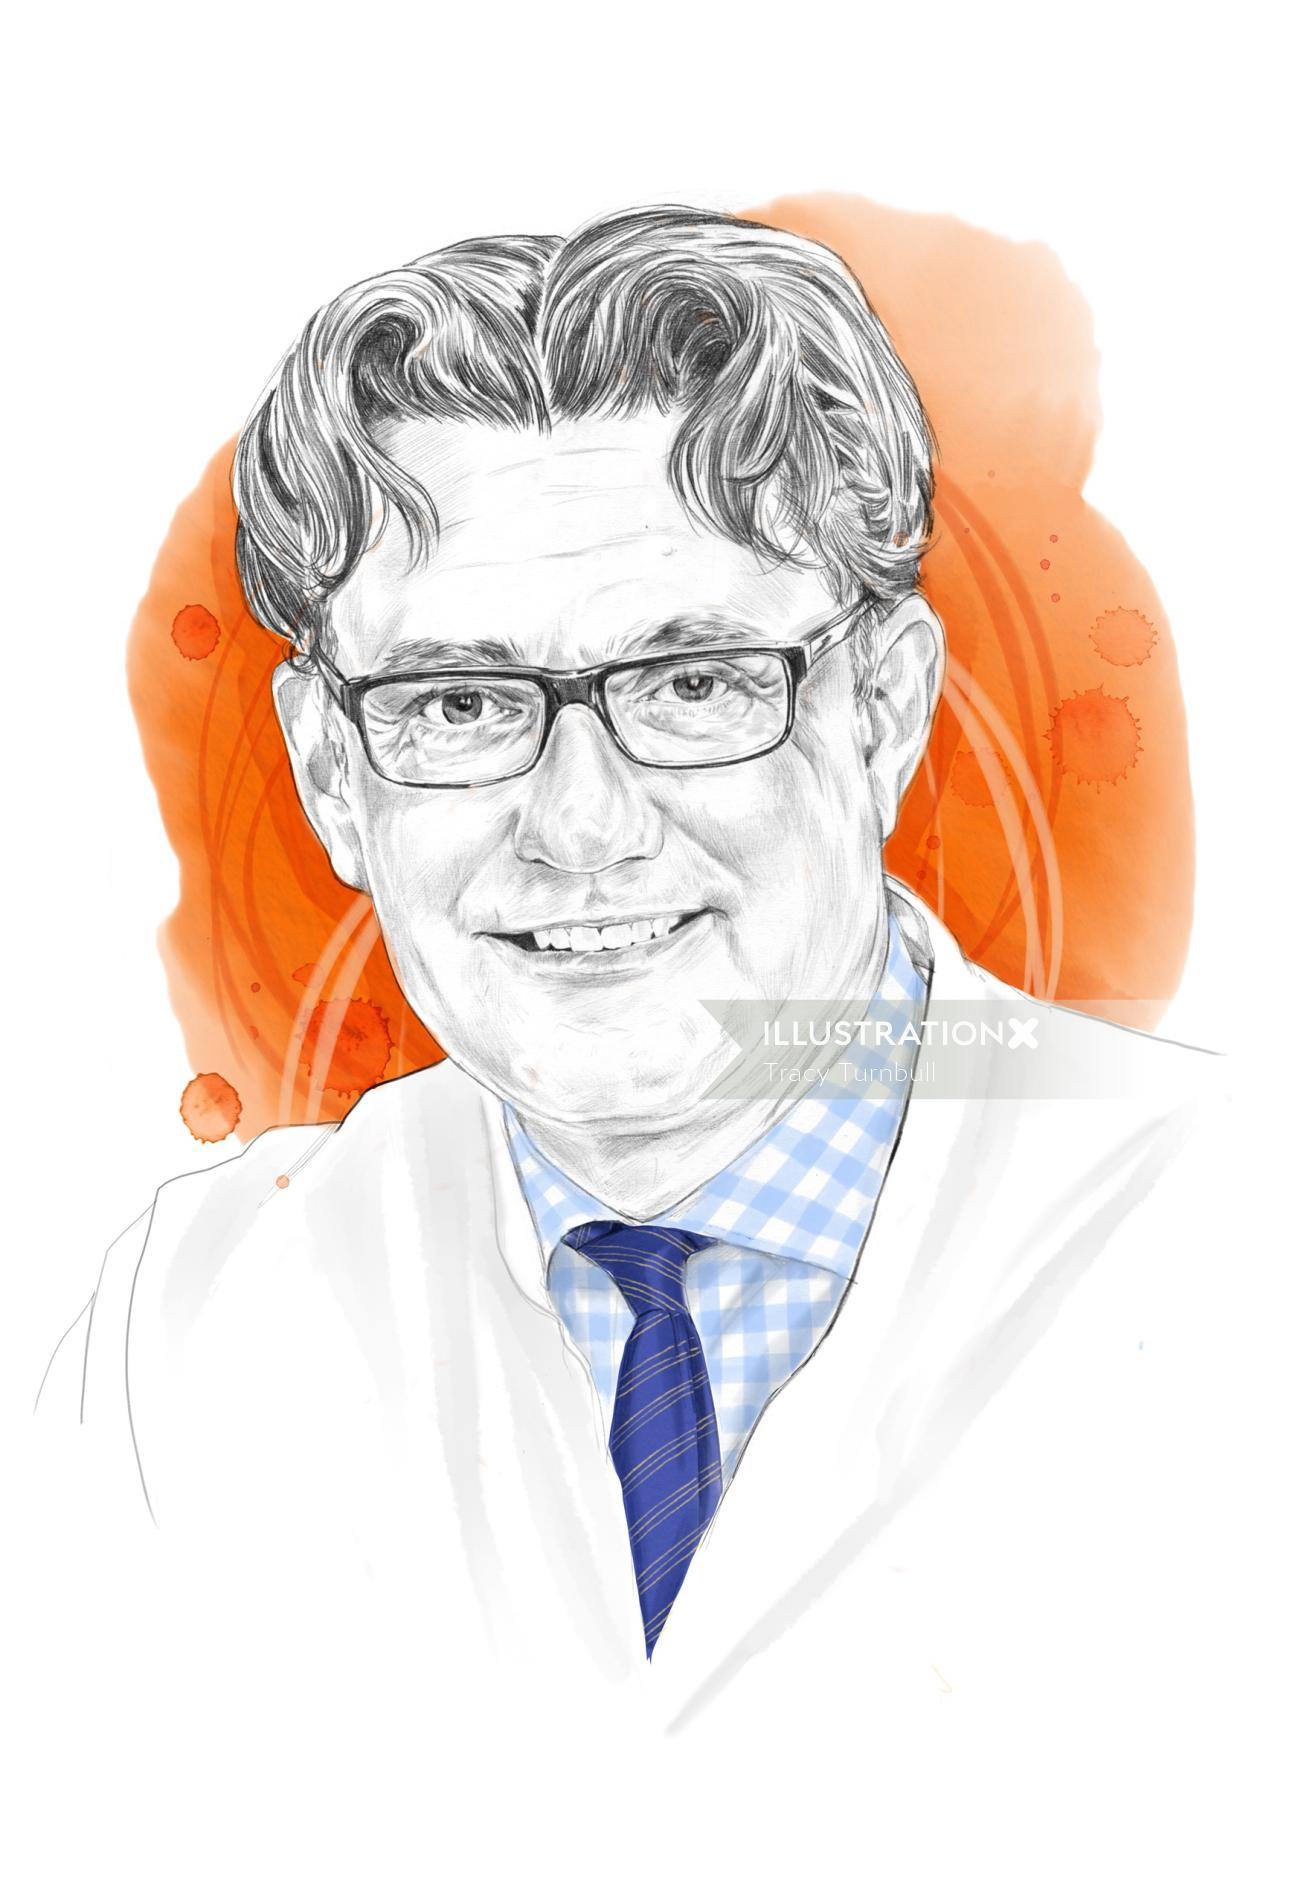 Editorial portrait illustration for Praxis Industry Magazine